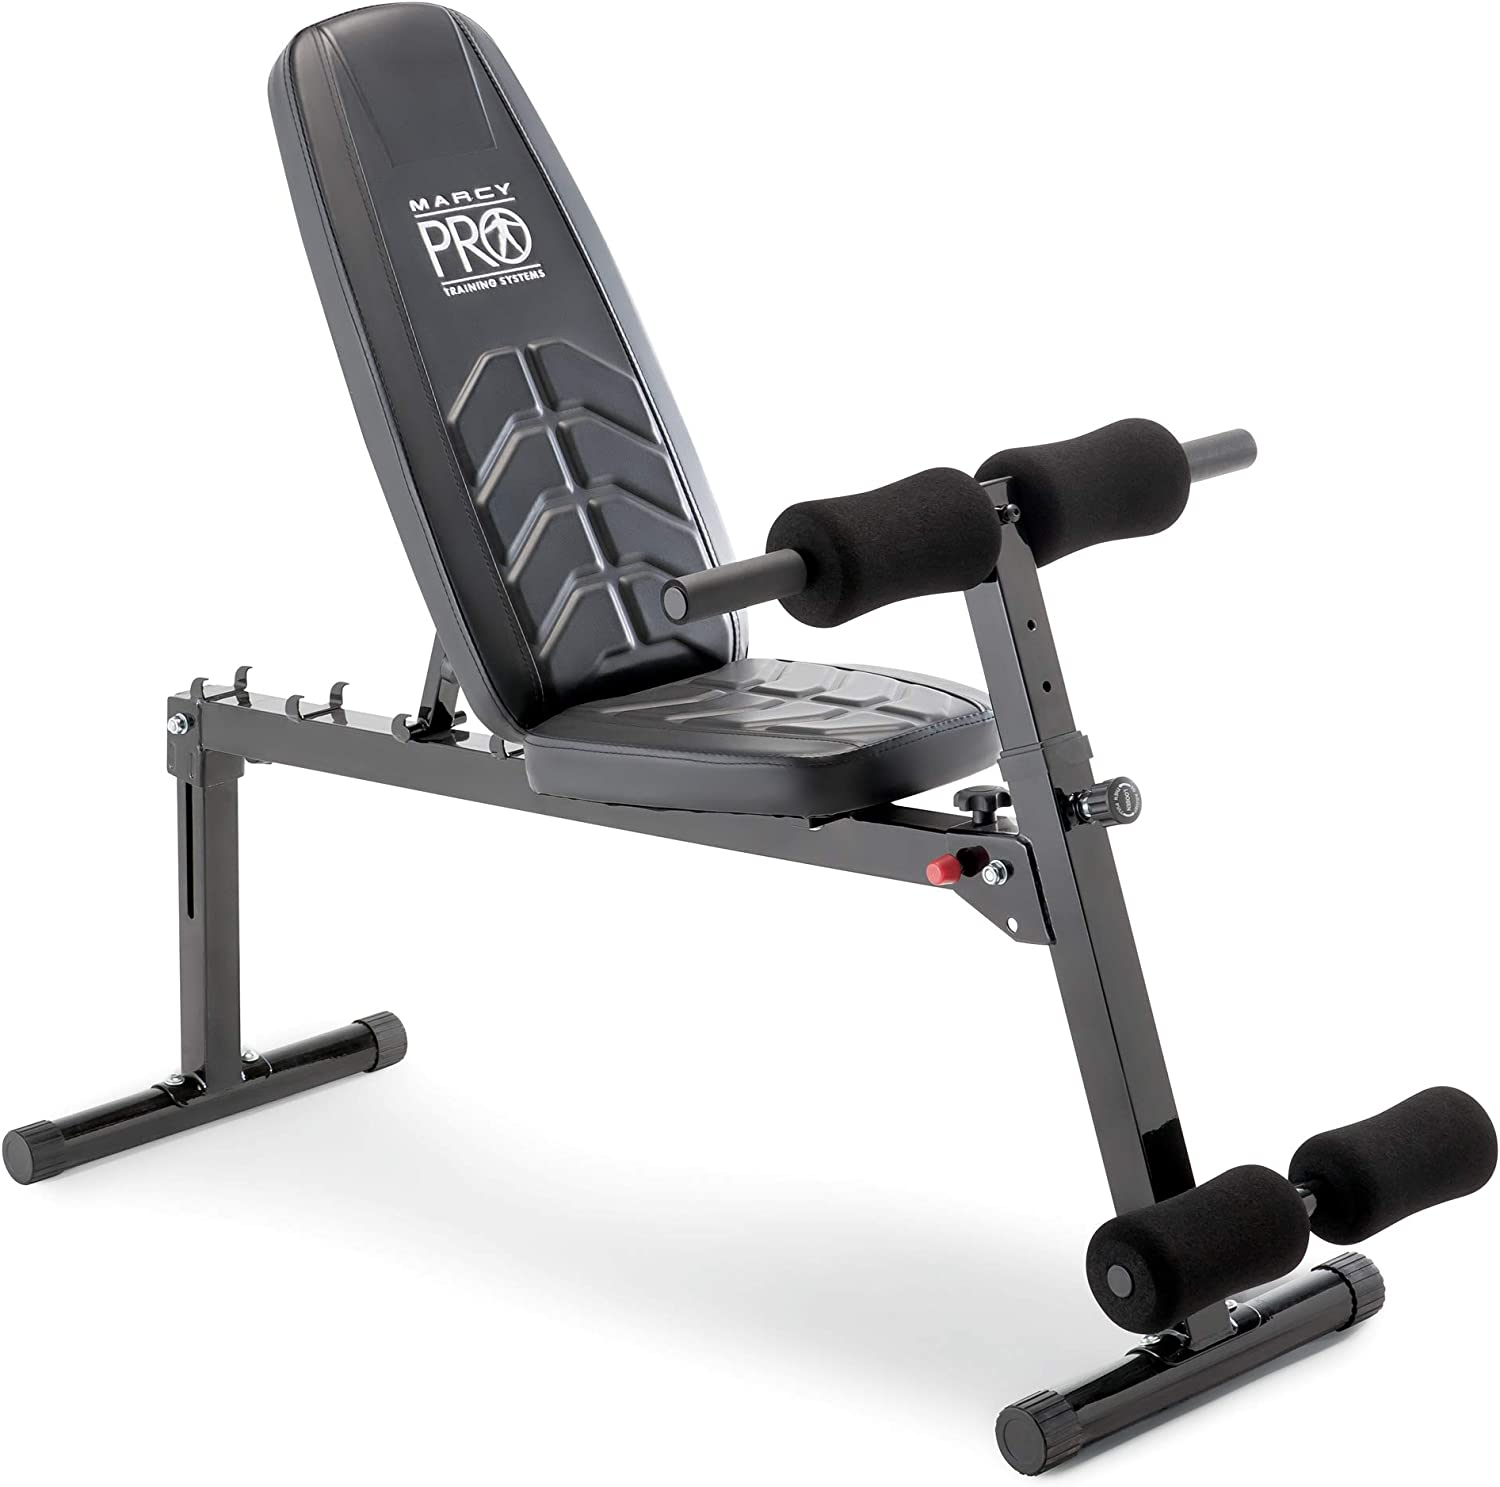 Marcy Multi-Position Utility Bench with Adjustable Hyper-Extension Anchor, 250-lb Max. Capacity Home-Gym Equipment PM-4880, Black